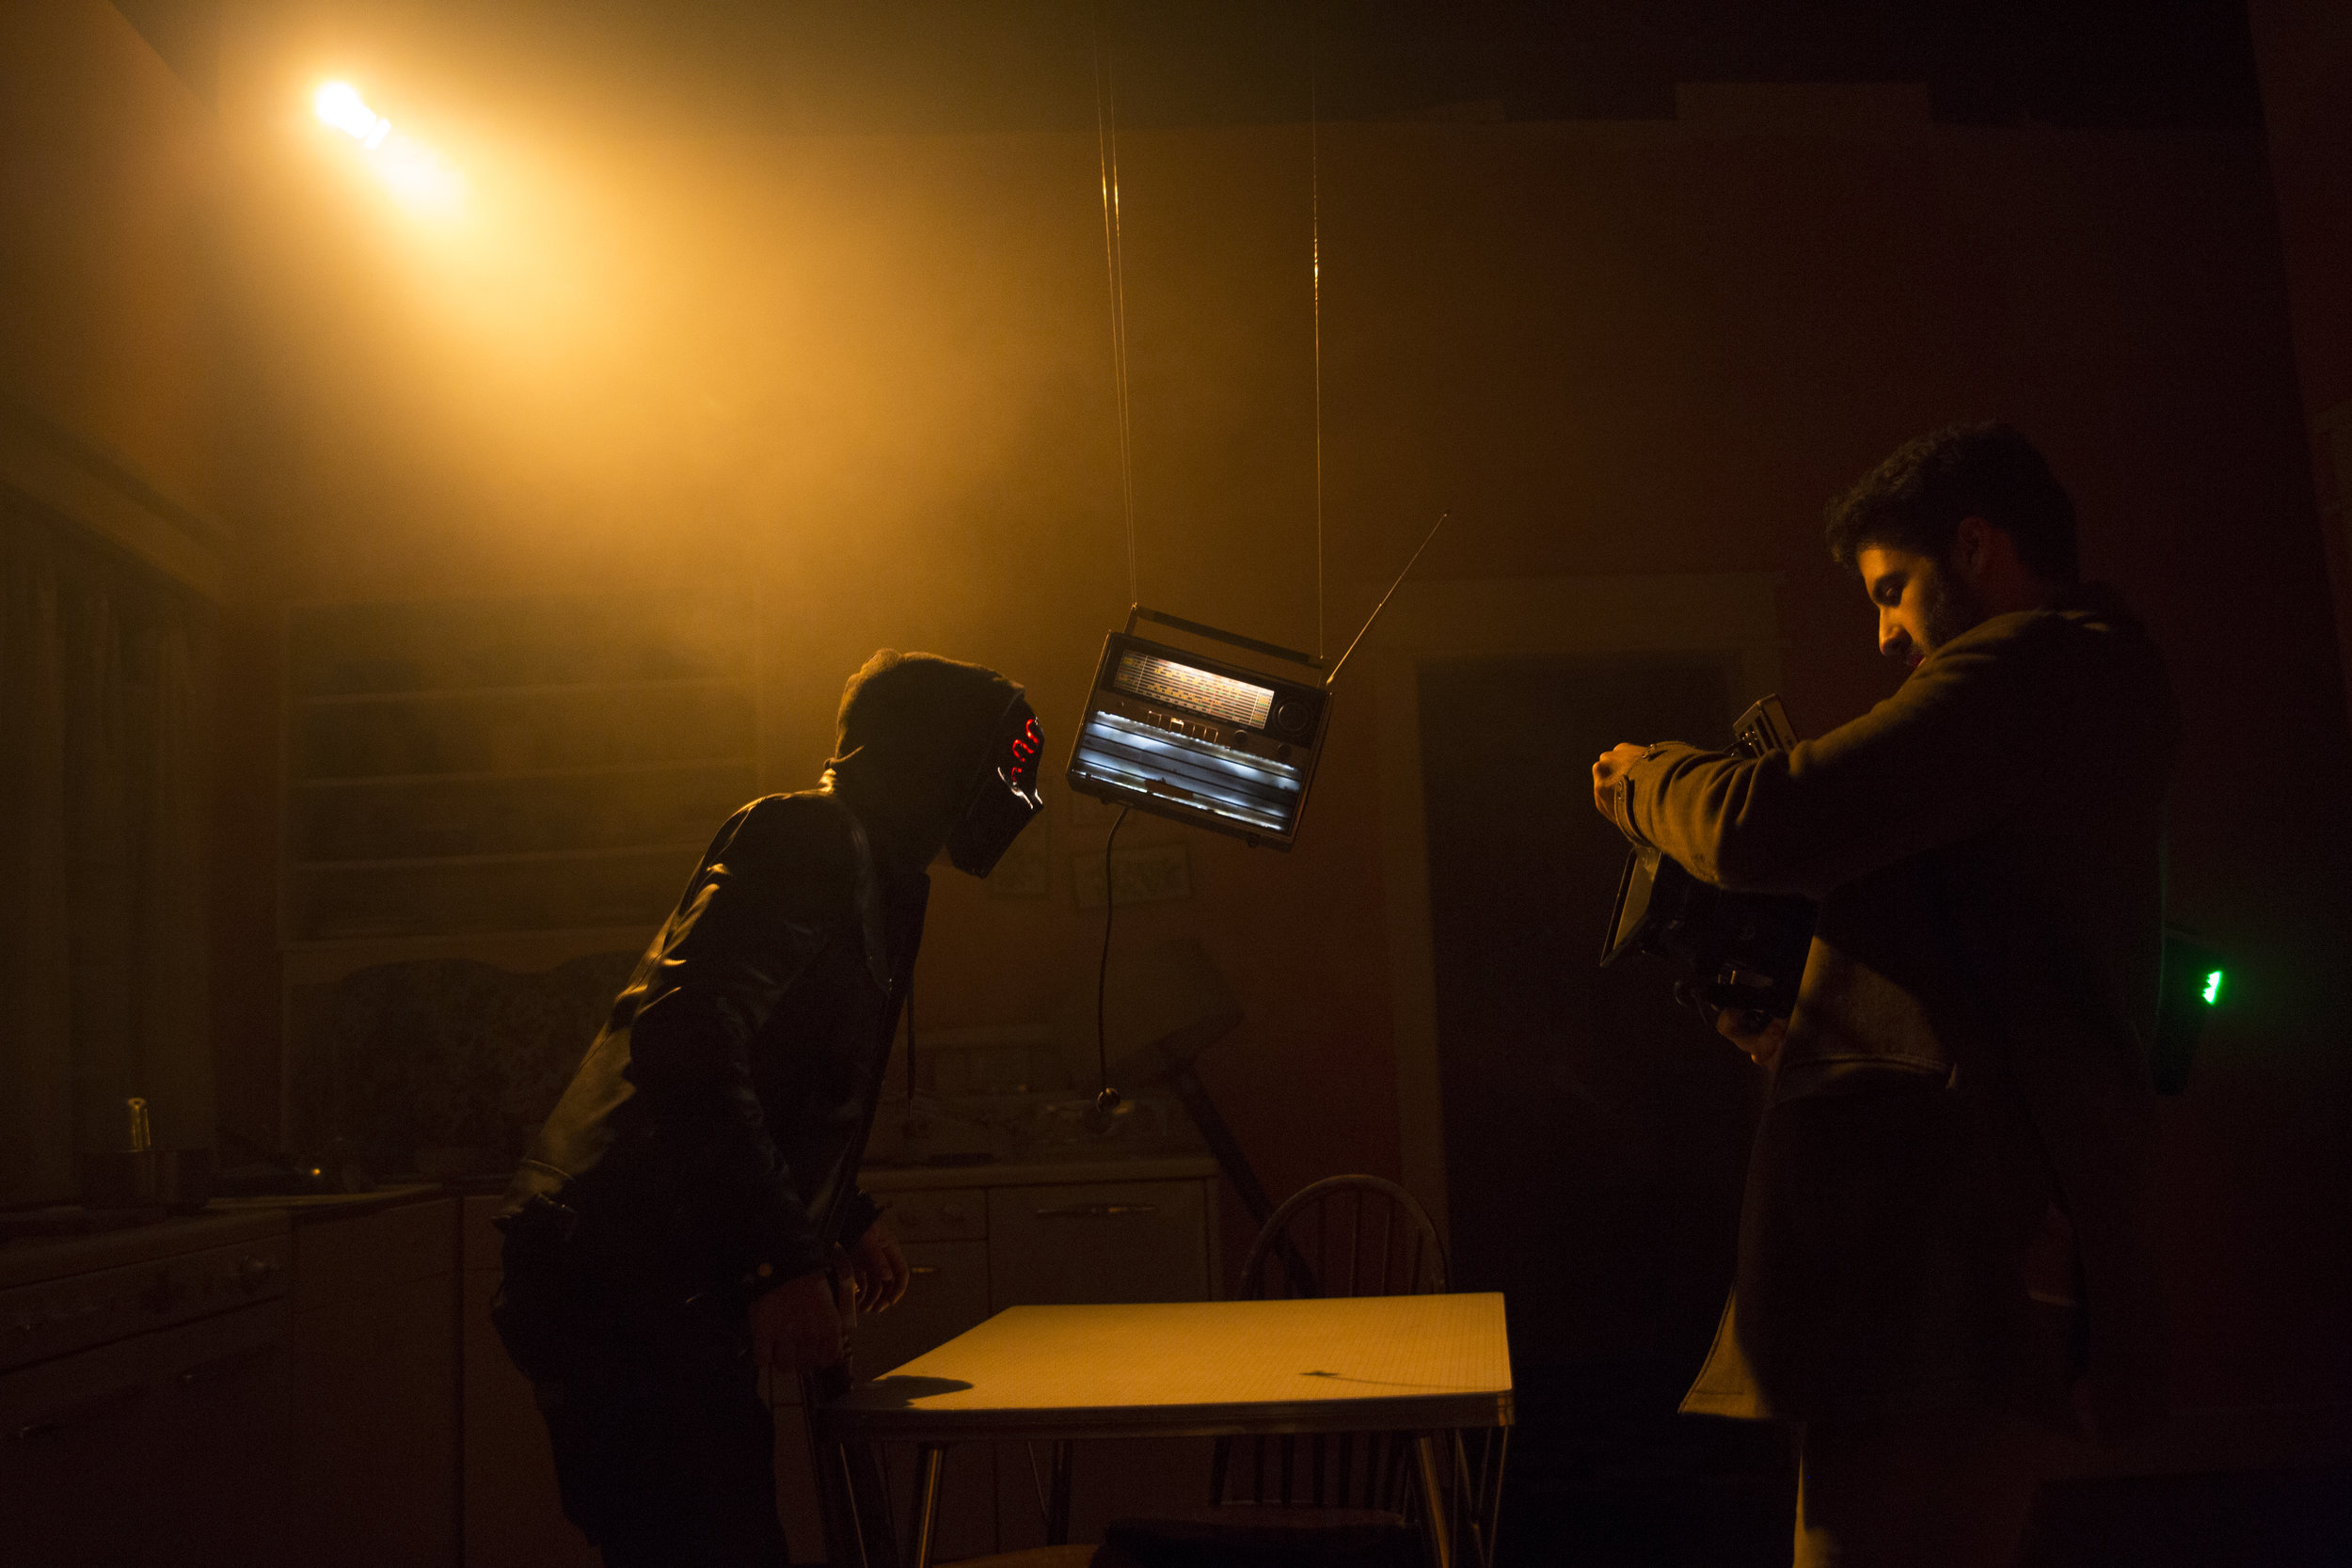 Matt Bendo composing a shot during a take on the set of Mind Games Photo Credit - Samuel Pollock